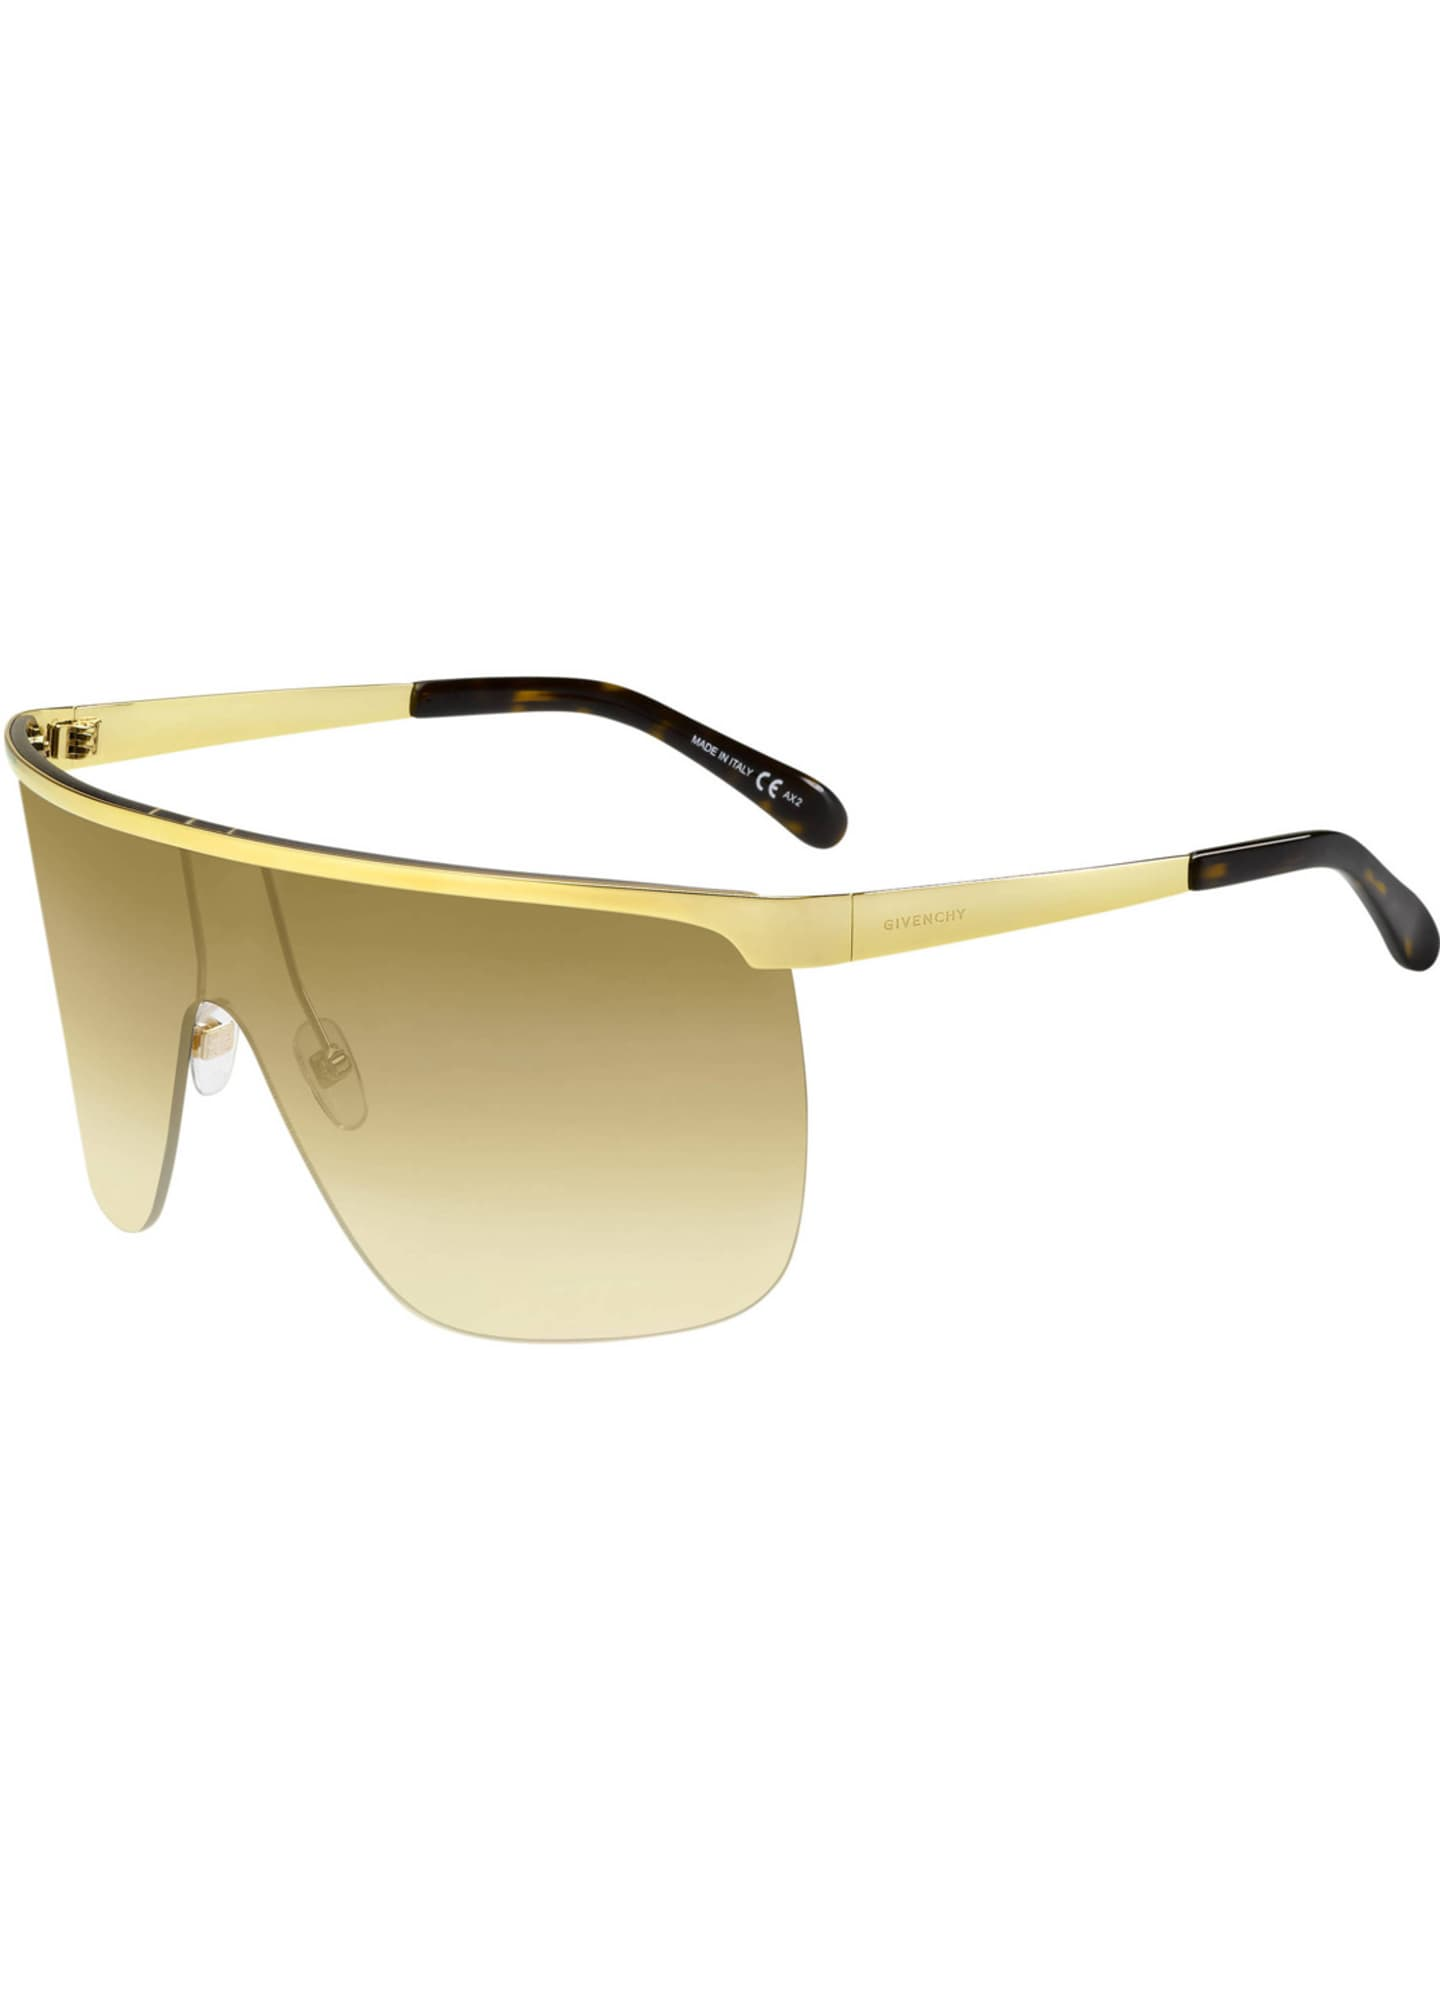 Givenchy Gradient Metal Shield Sunglasses